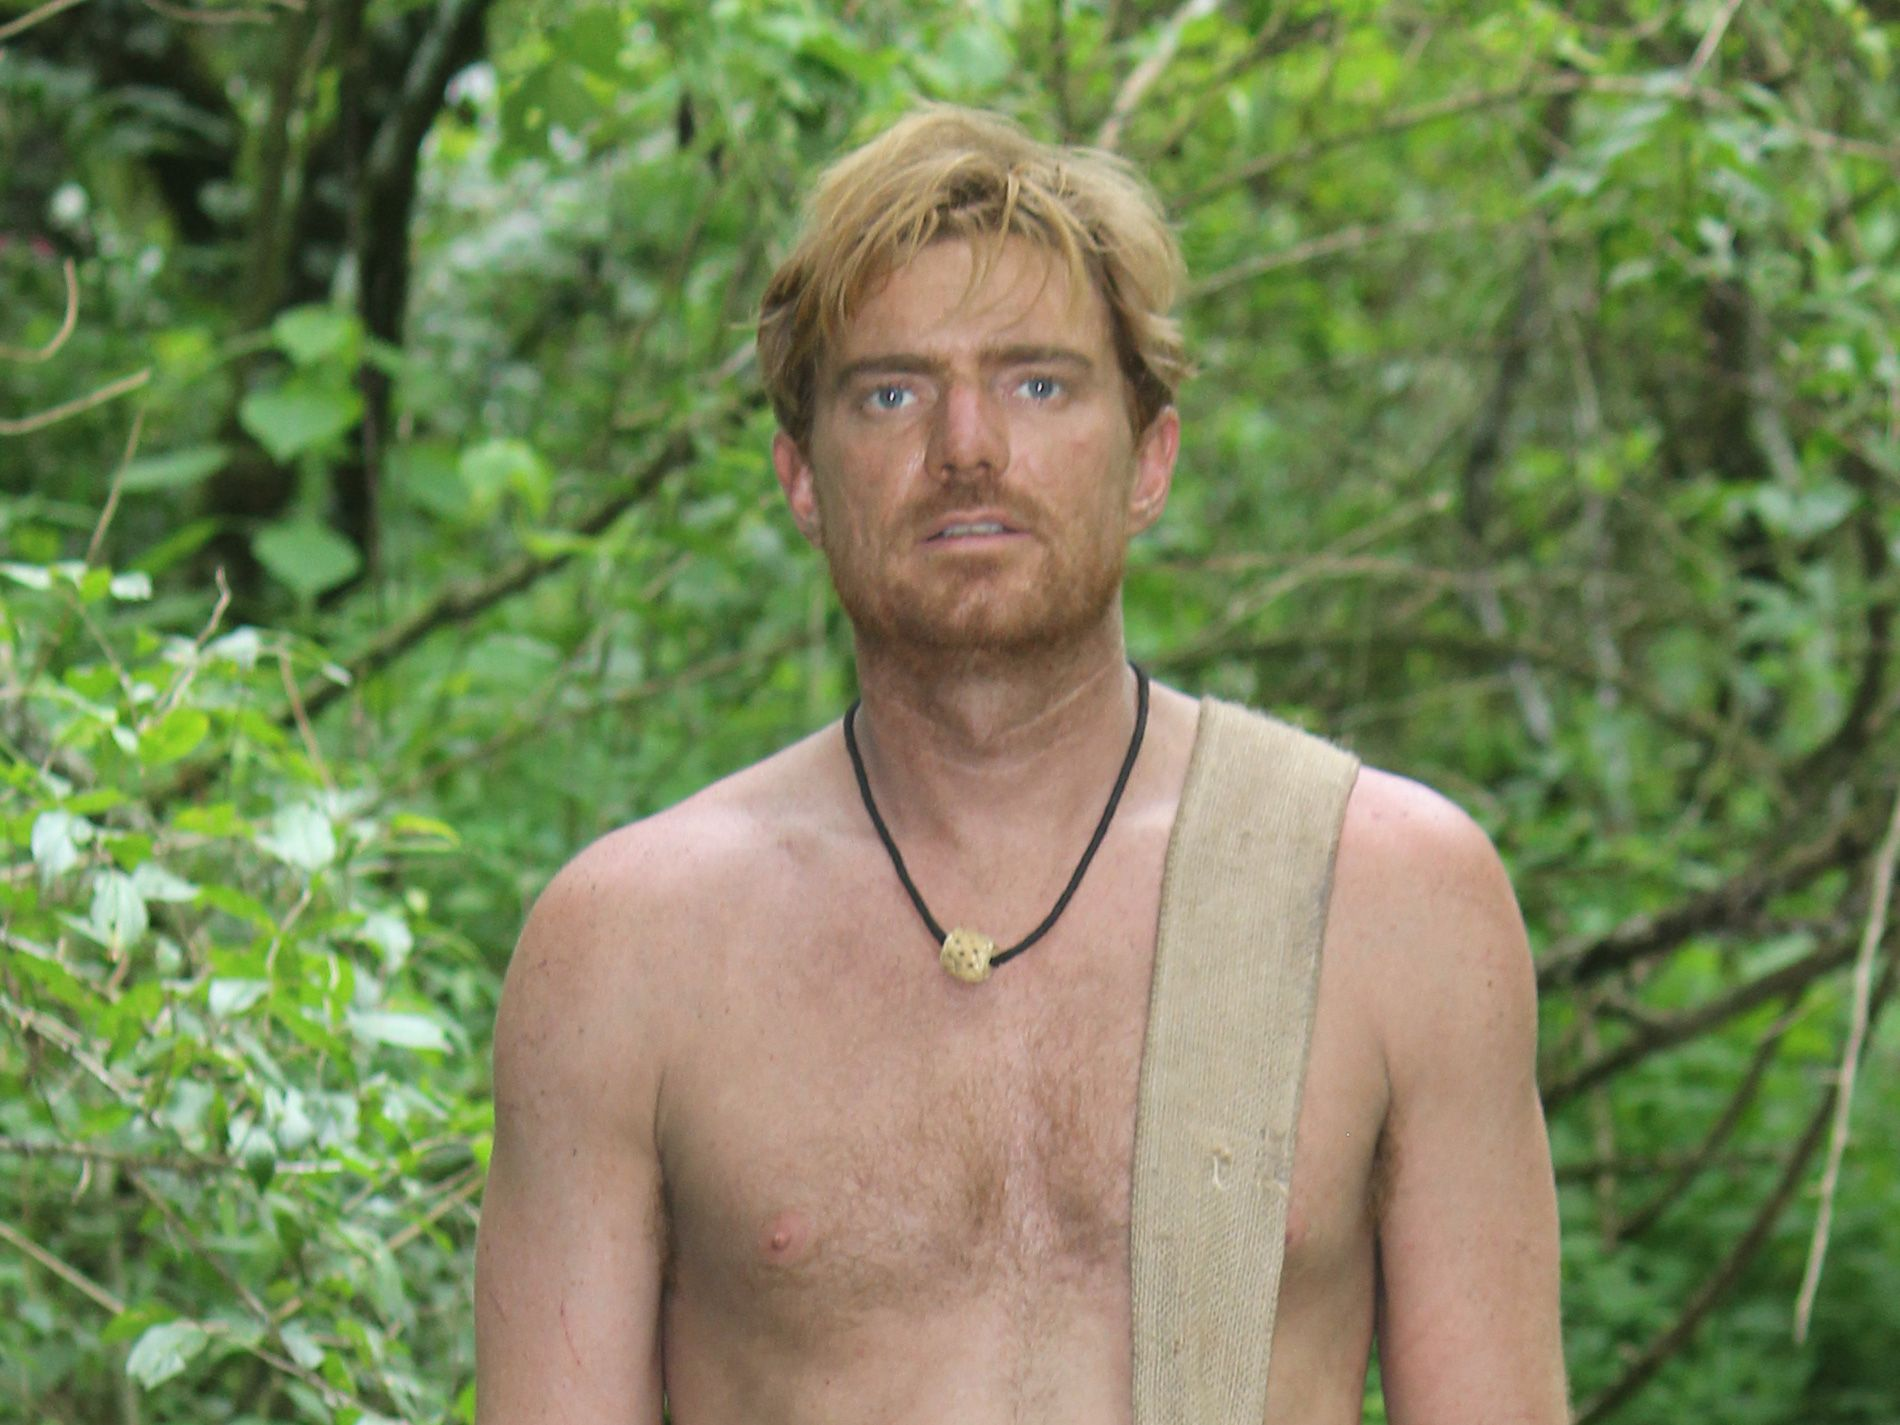 Naked and afraid discovery channel uncensored-9163